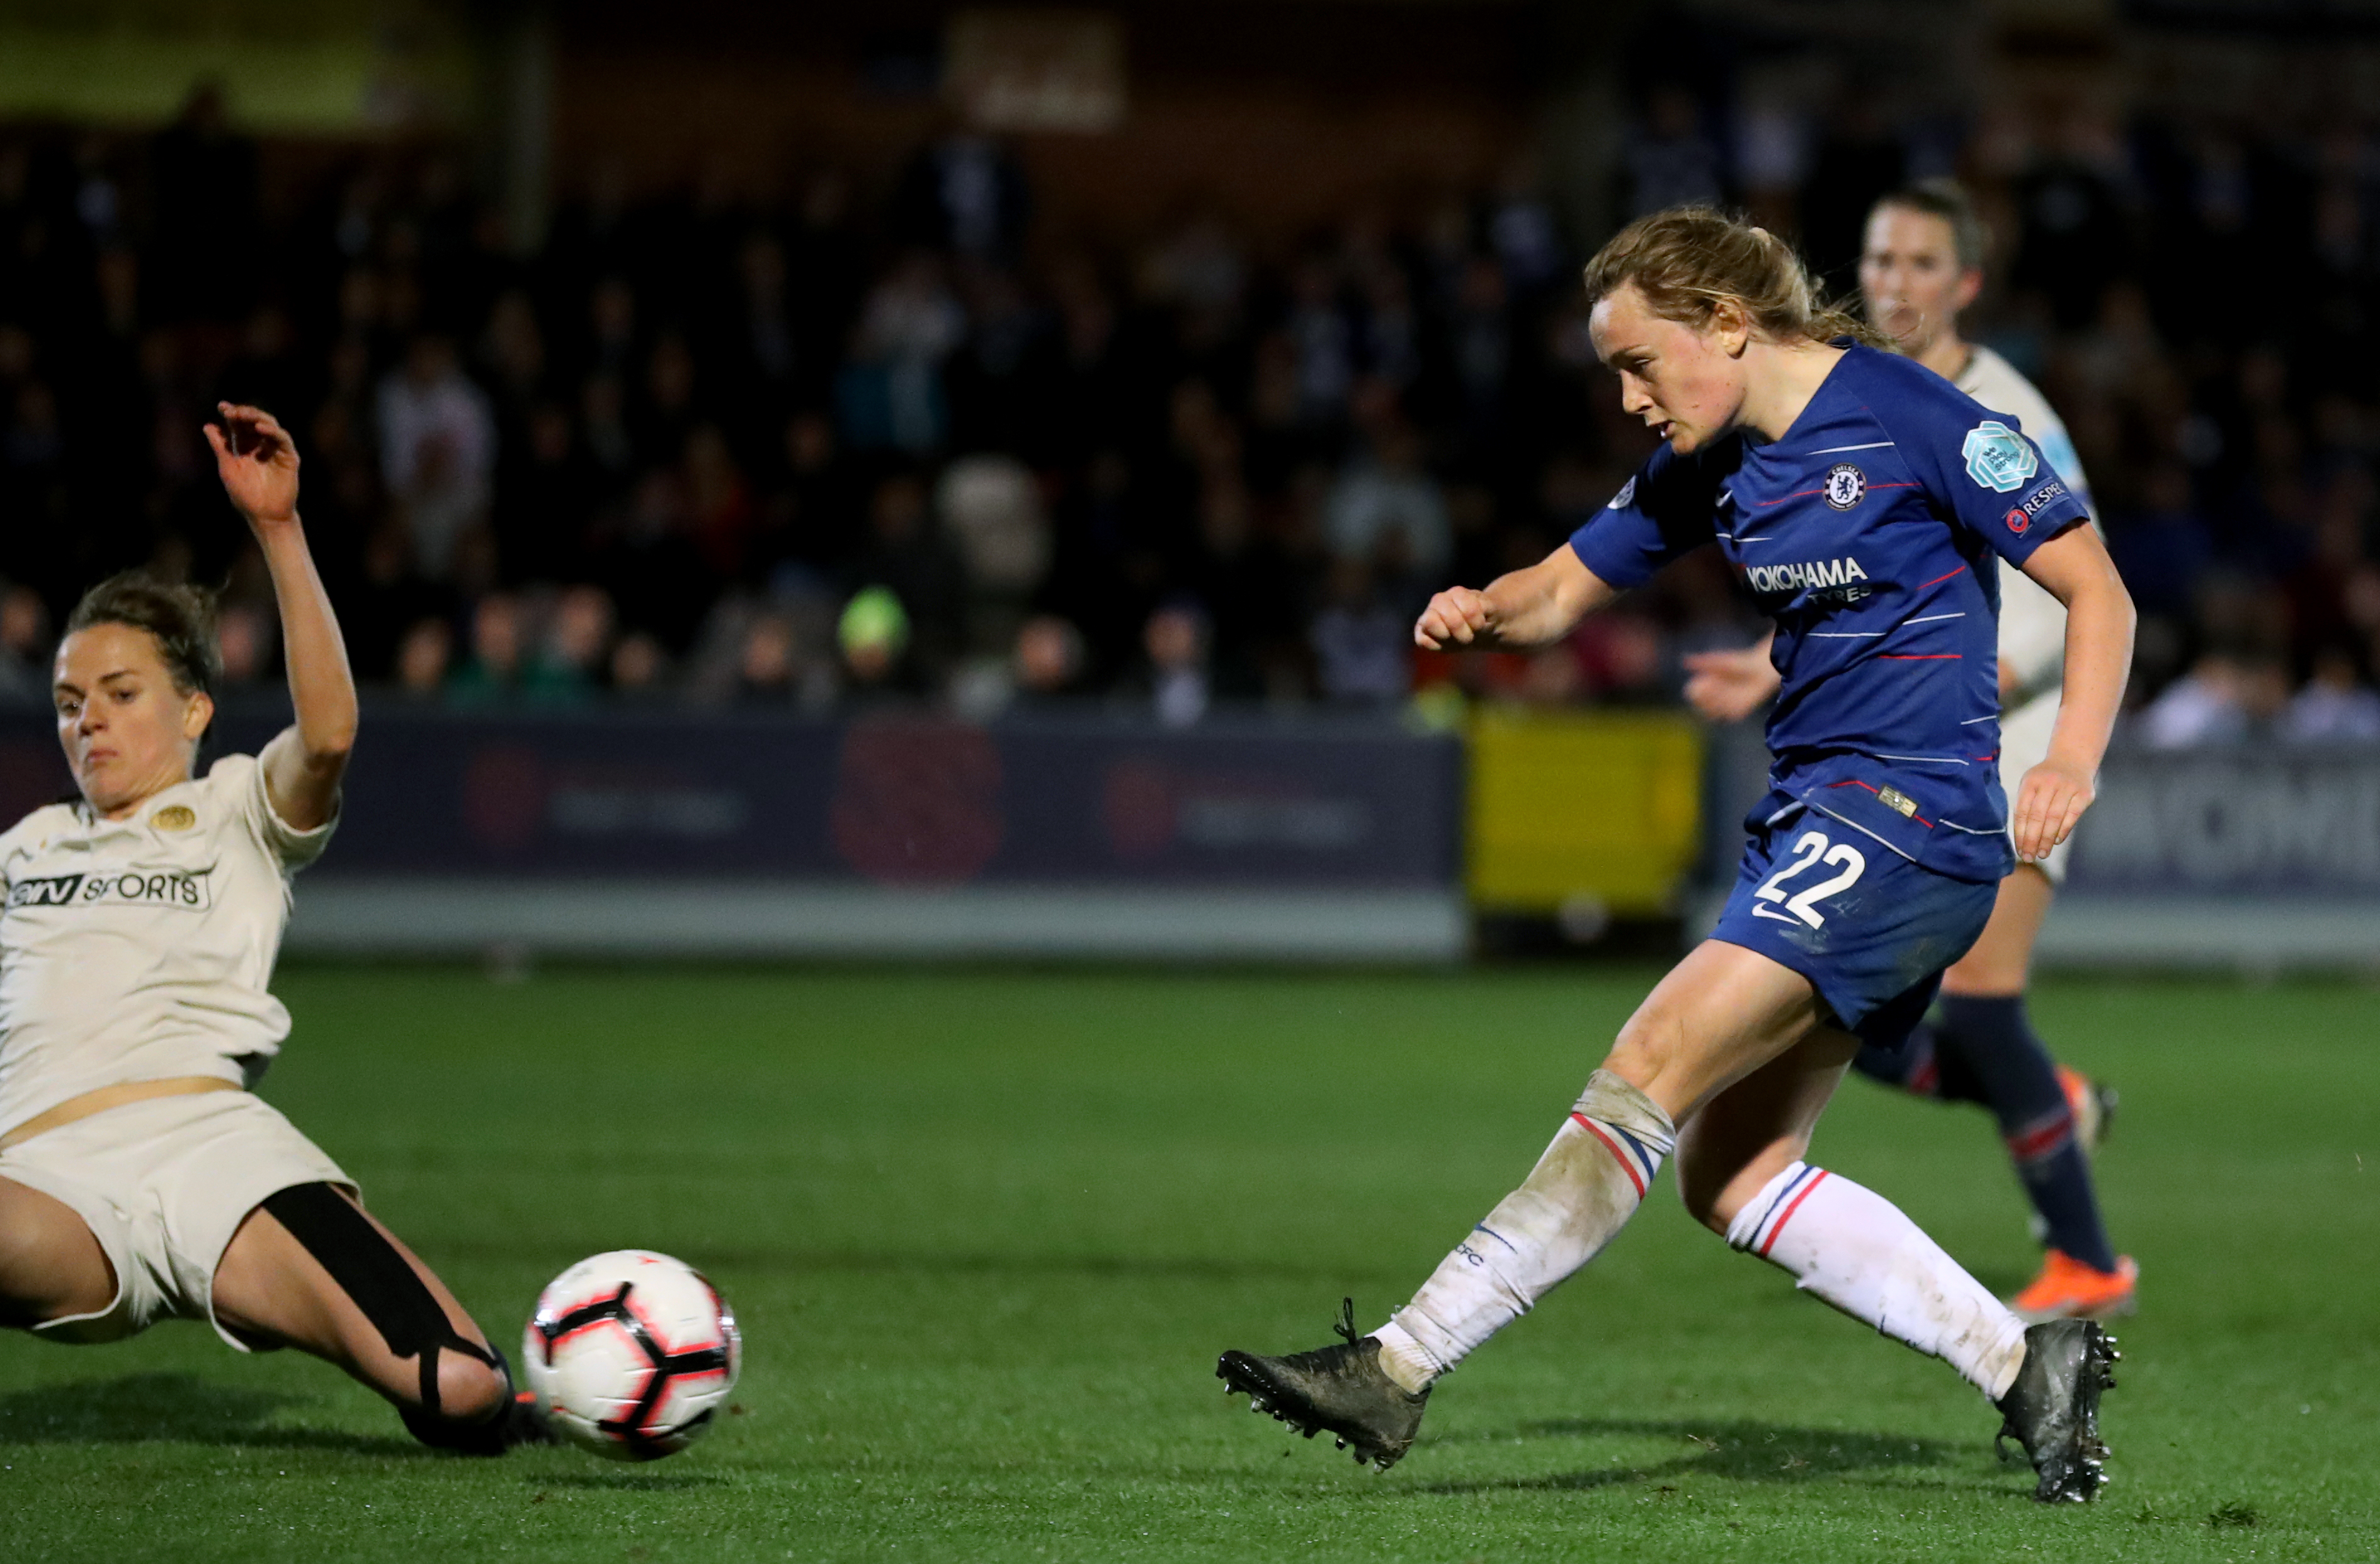 Erin Cuthbert scored a late goal to help put Chelsea in a strong position. (Bradley Collyer/PA Images)